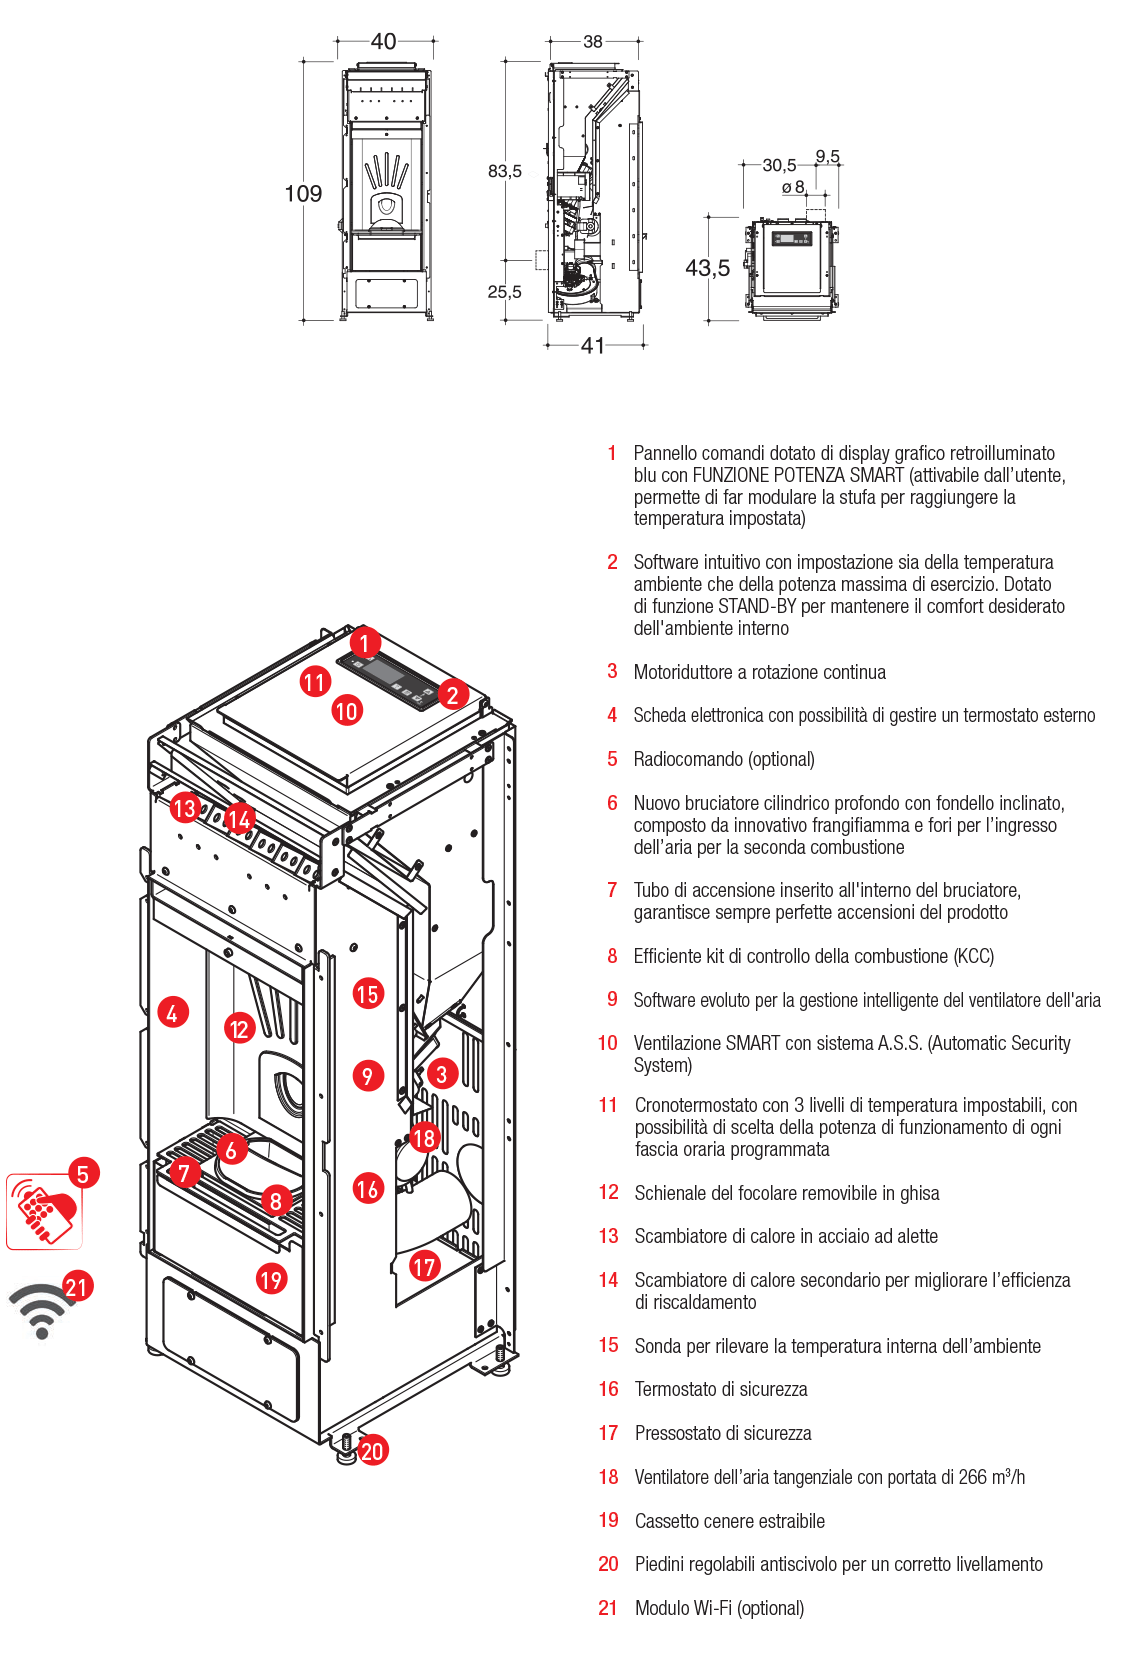 pellet stove with a system of forced convection warm air with A.S.S. system